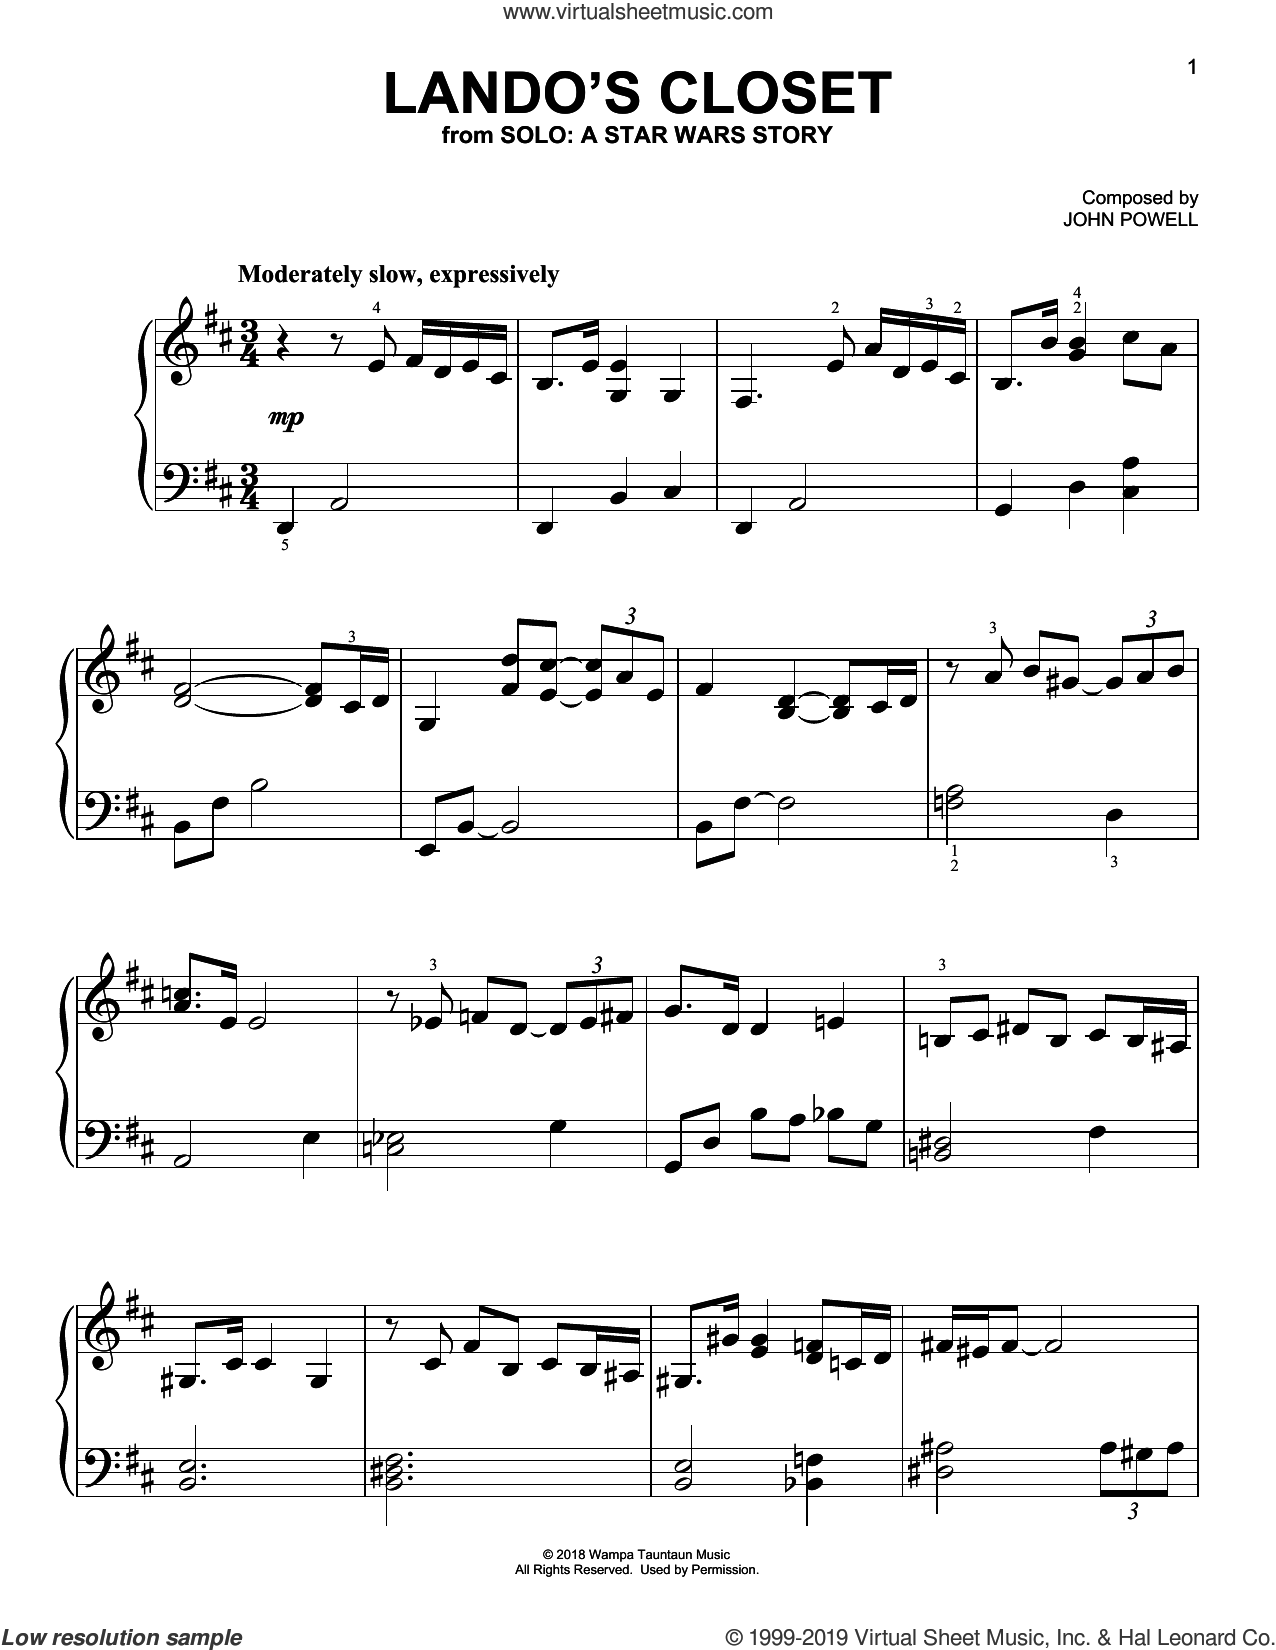 Lando's Closet (from Solo: A Star Wars Story) sheet music for piano solo by John Powell, classical score, easy skill level